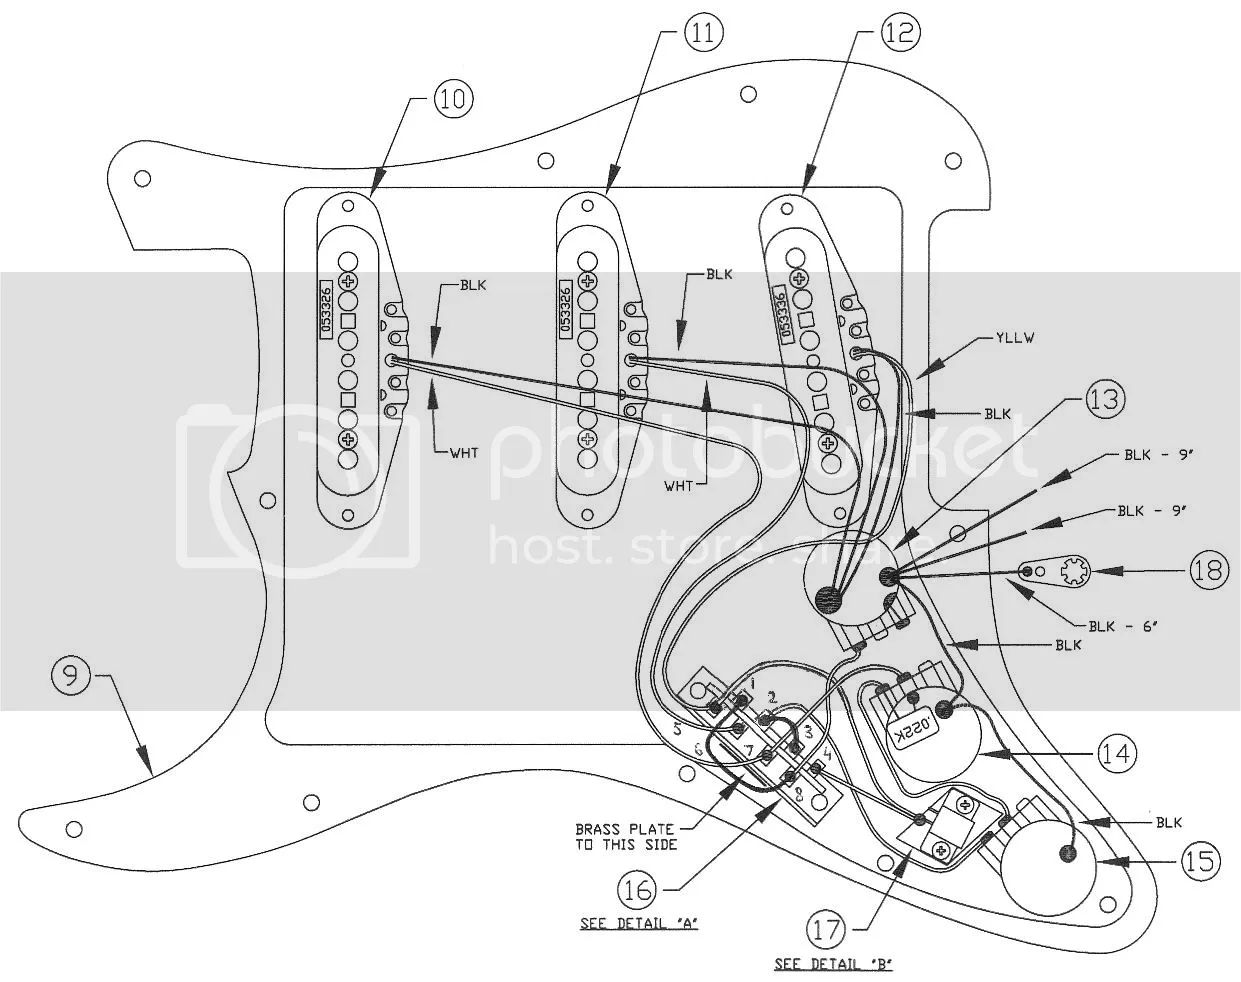 fender deluxe player strat wiring diagram pdf